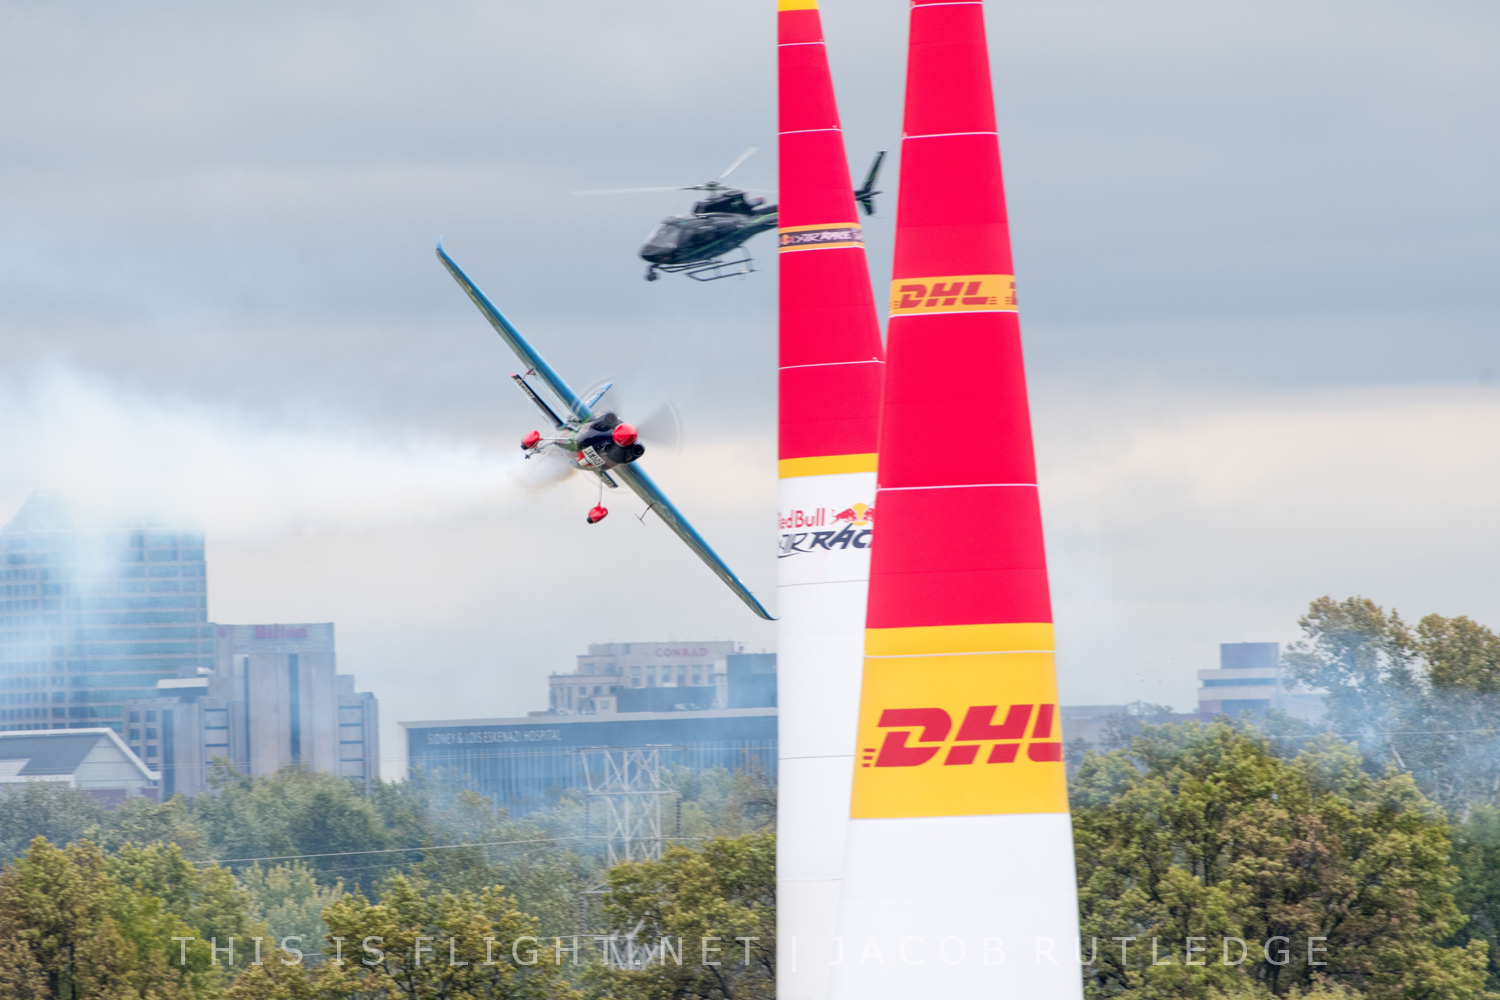 red bull report Find company research, competitor information, contact details & financial data for red bull gmbh get the latest business insights from d&b hoovers.